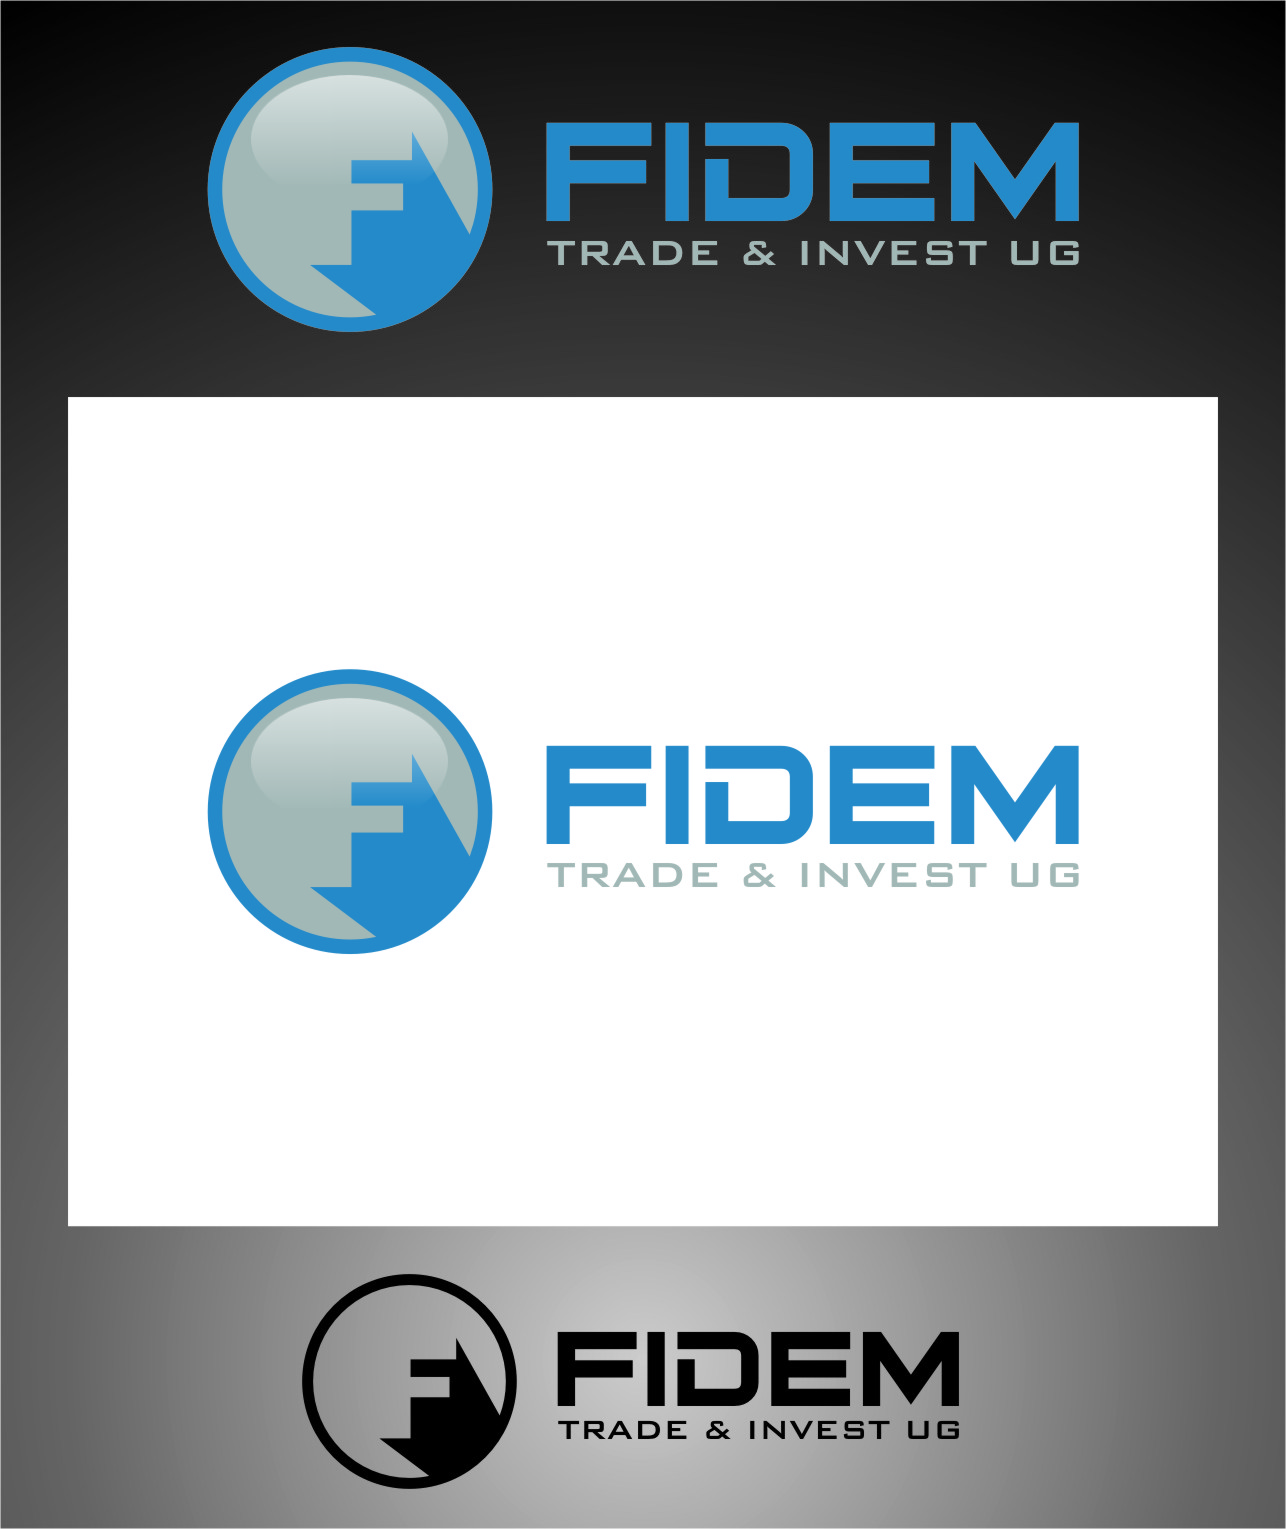 Logo Design by Ngepet_art - Entry No. 396 in the Logo Design Contest Professional Logo Design for FIDEM Trade & Invest UG.